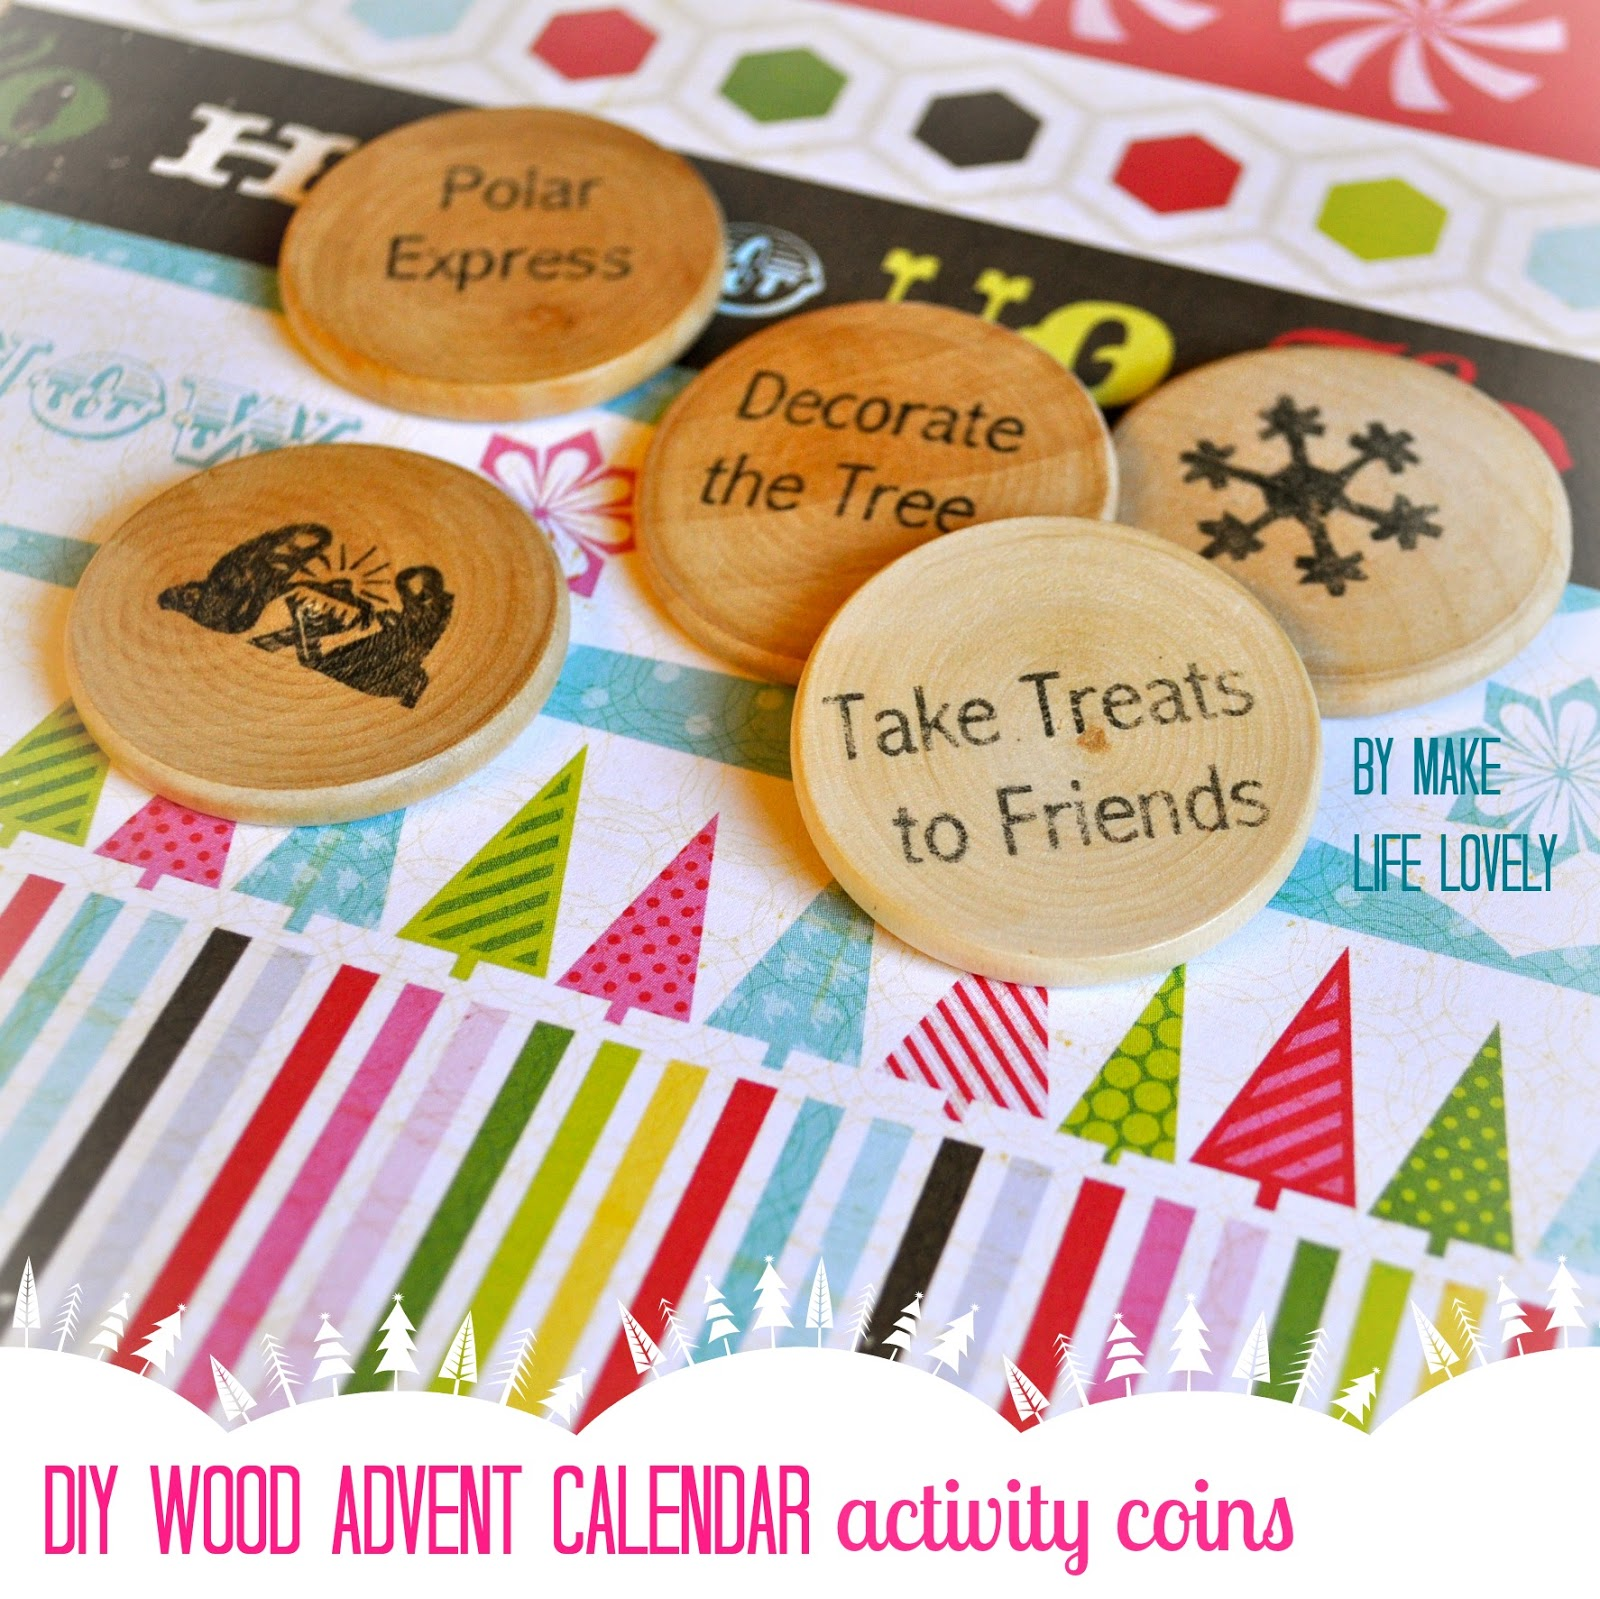 Wood Advent Calendar Activity Coins Free Printable Make Life Lovely